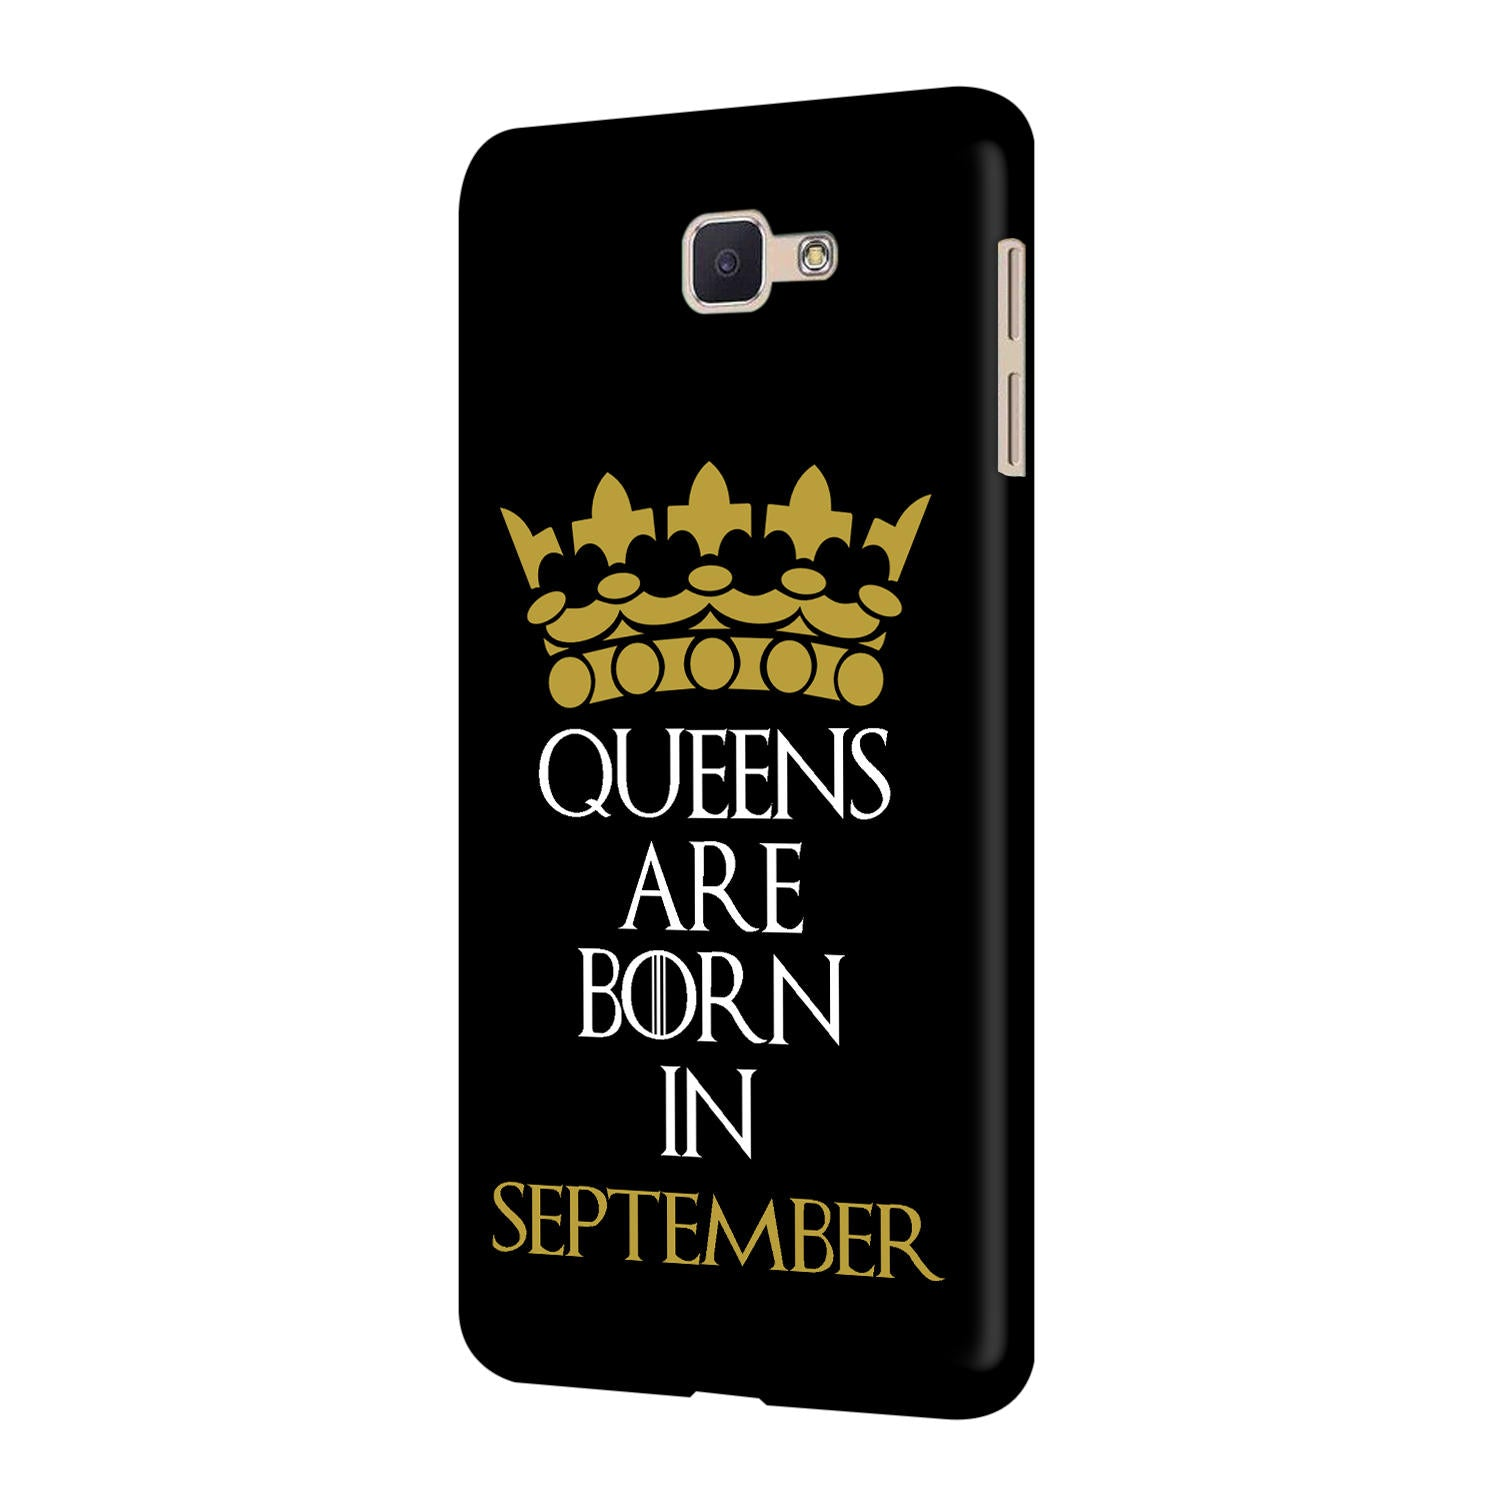 Queens September Samsung Galaxy J7 Prime Mobile Cover Case - MADANYU